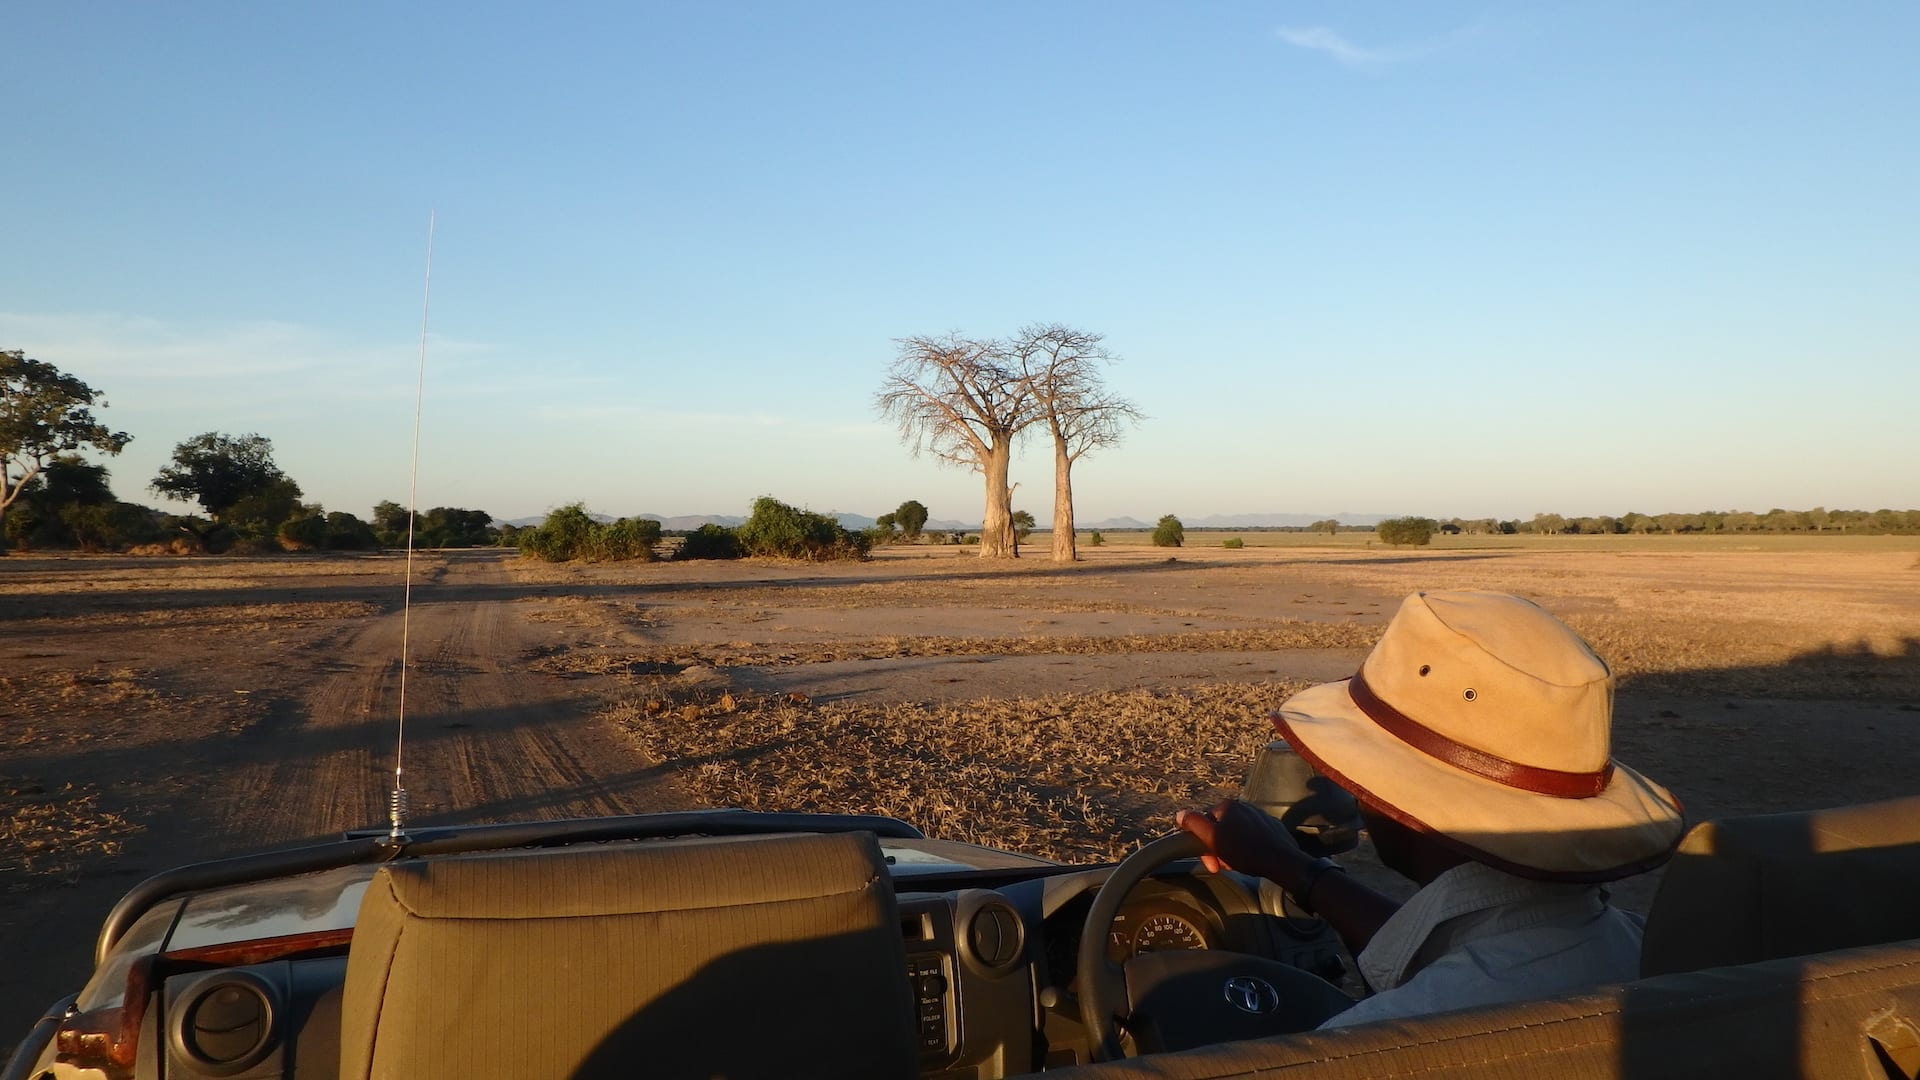 ALGEMEEN - ZAM - Gamedrive in het Lower Zambezi National Park